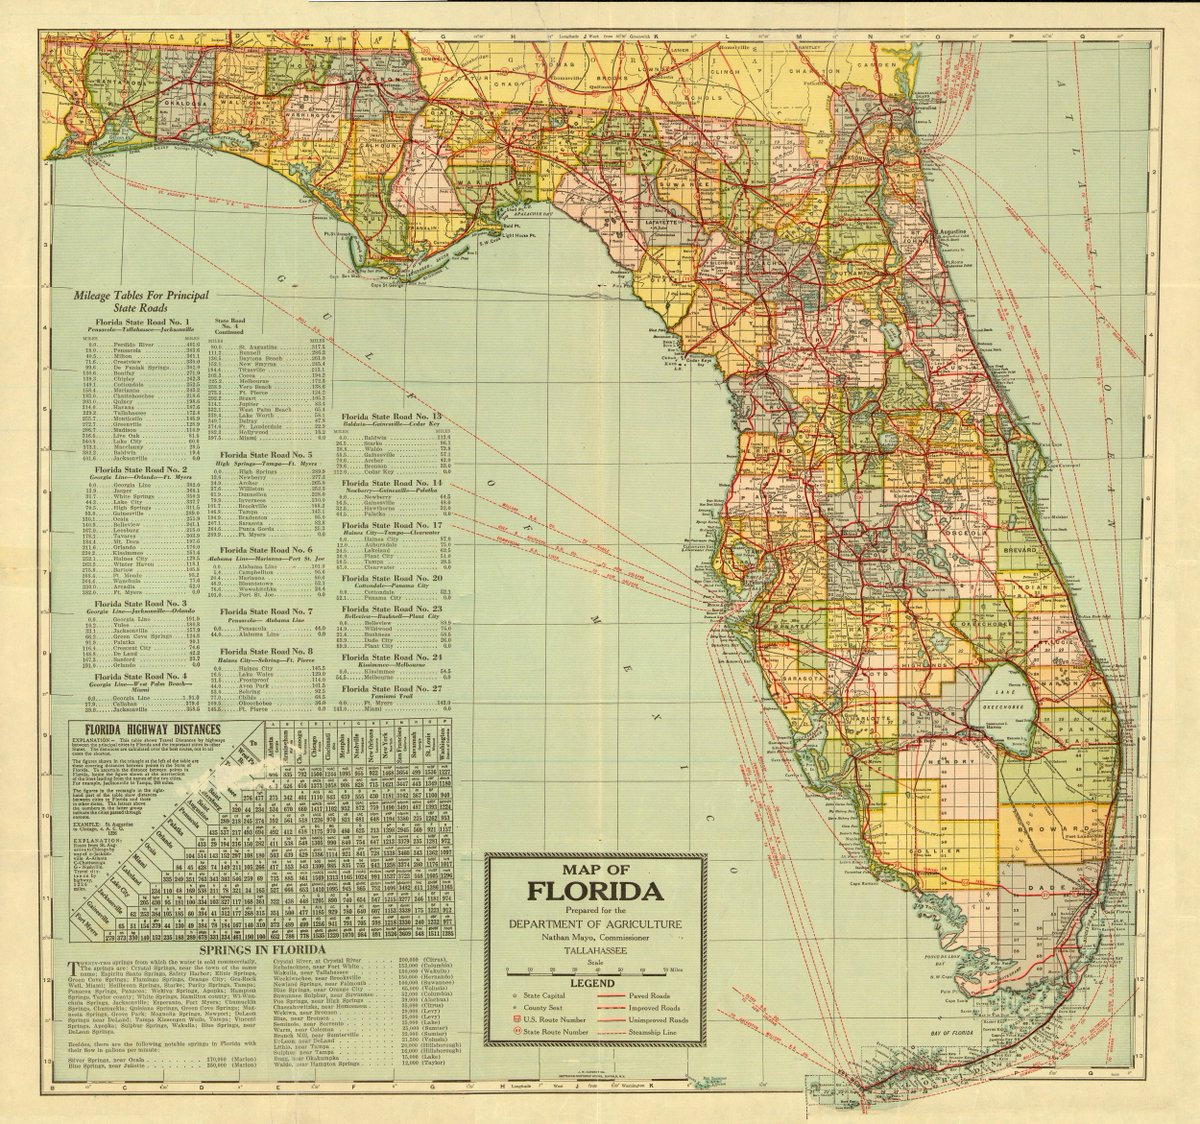 Florida Map With Highways.Florida Memory On Twitter A Map Of The Sunshine State Prepared For